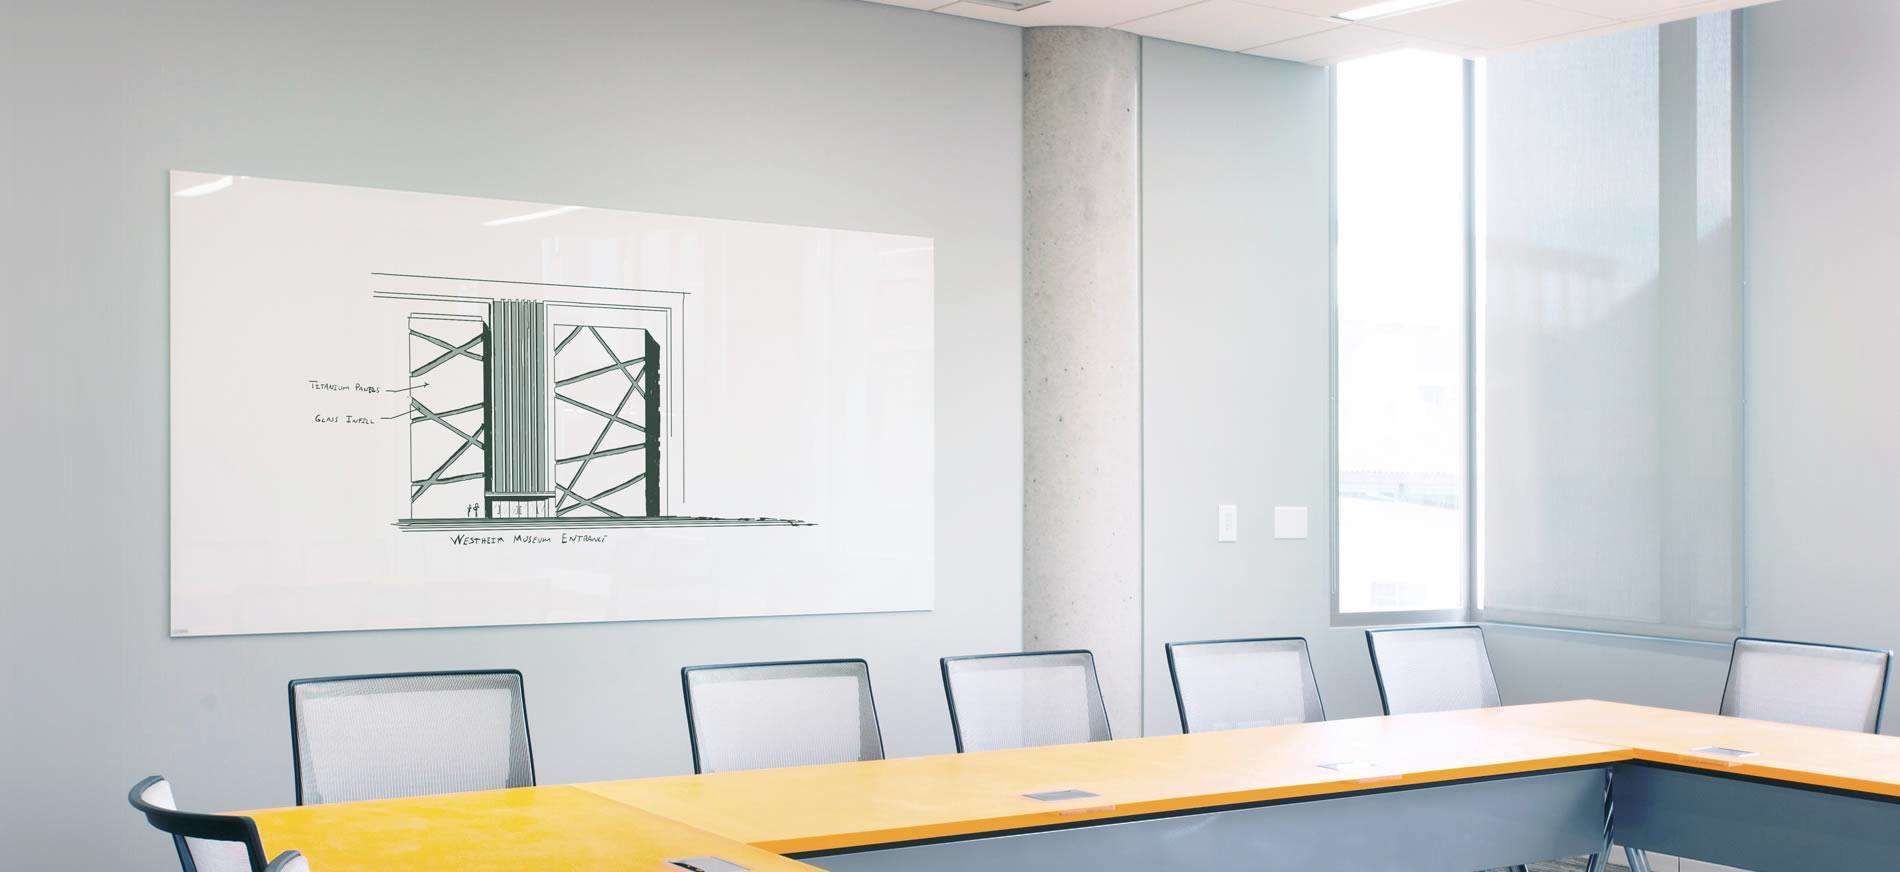 Turn A Wall Into A Whiteboard Transform Overlooked Office Areas With A Glass Whiteboard Clarus